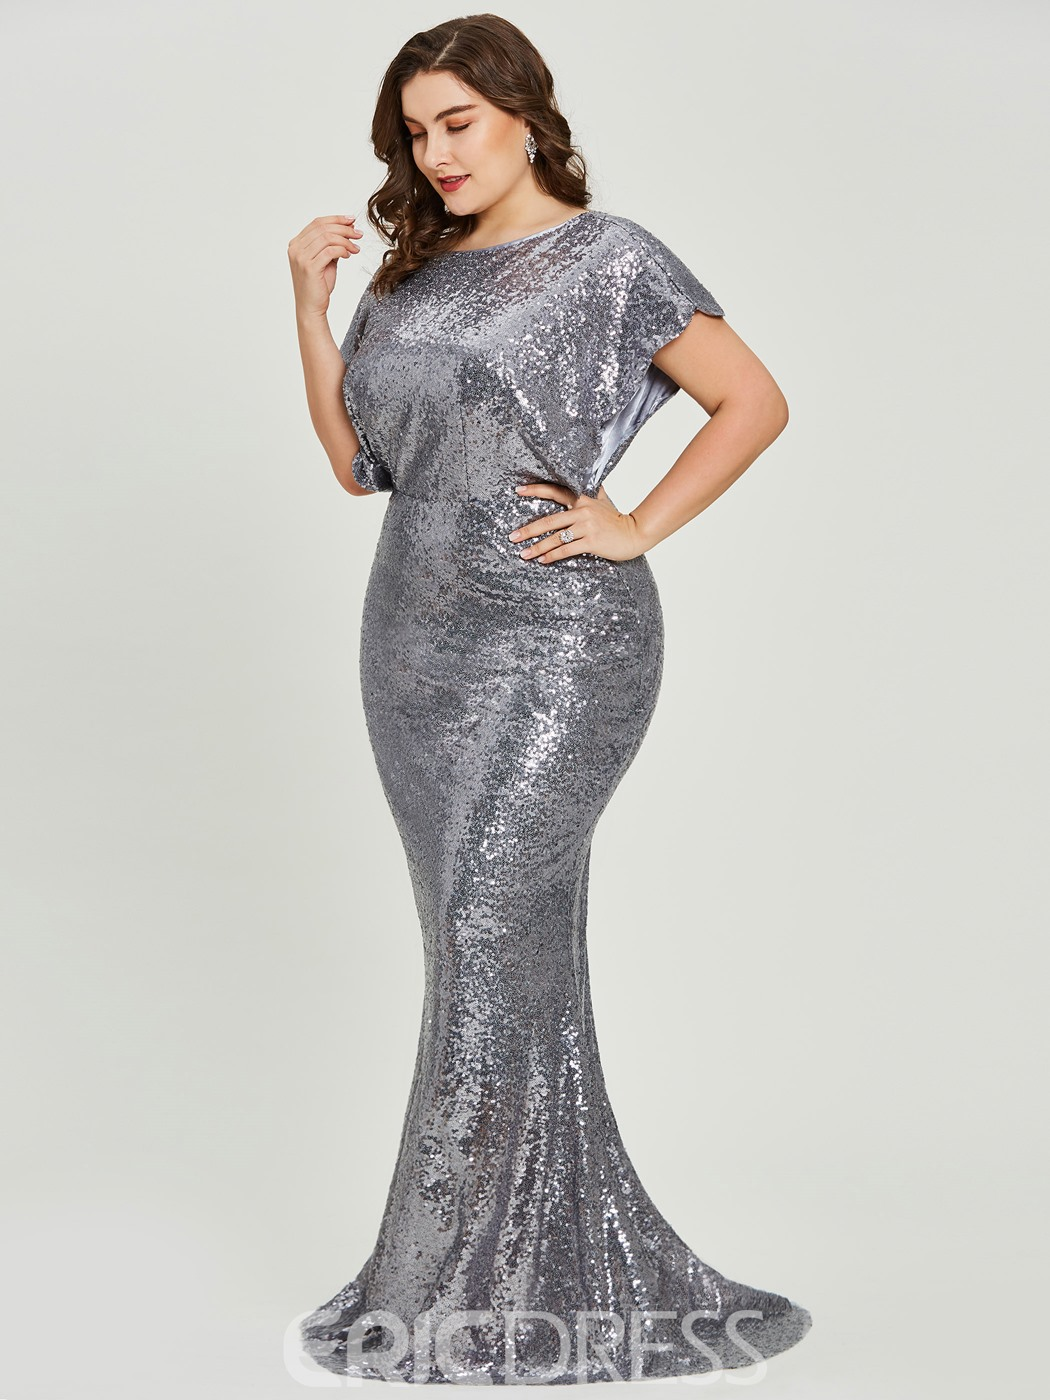 3e7d3eb2c8 Ericdress Sequins Mermaid Plus Size Evening Dress With Short  Sleeves(13179543)